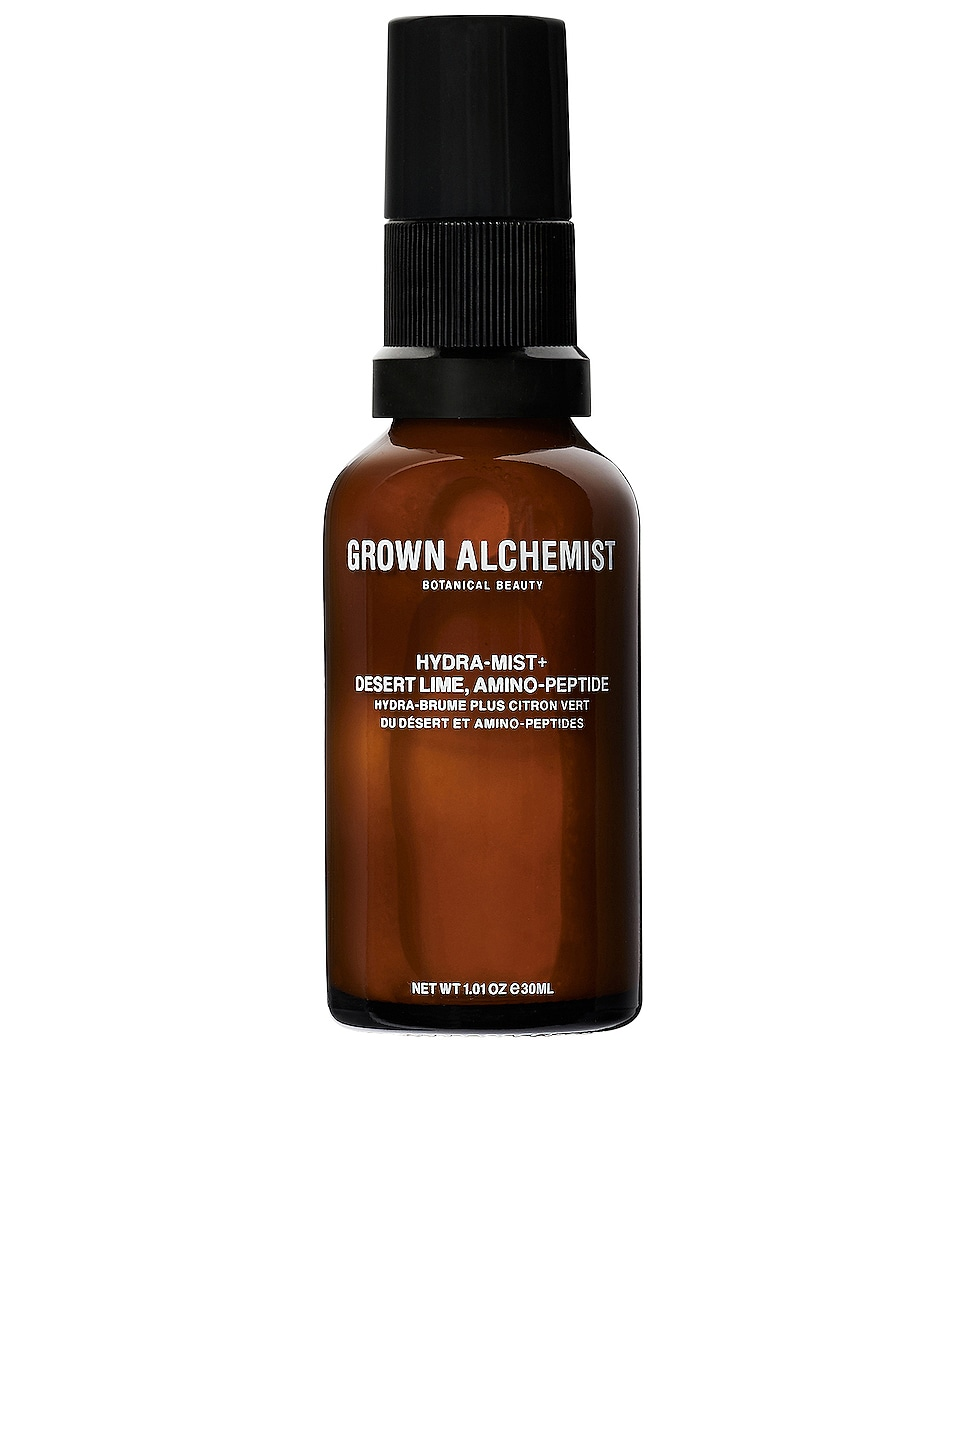 Grown Alchemist Hydra Mist in Desert Lime & Amino Peptide